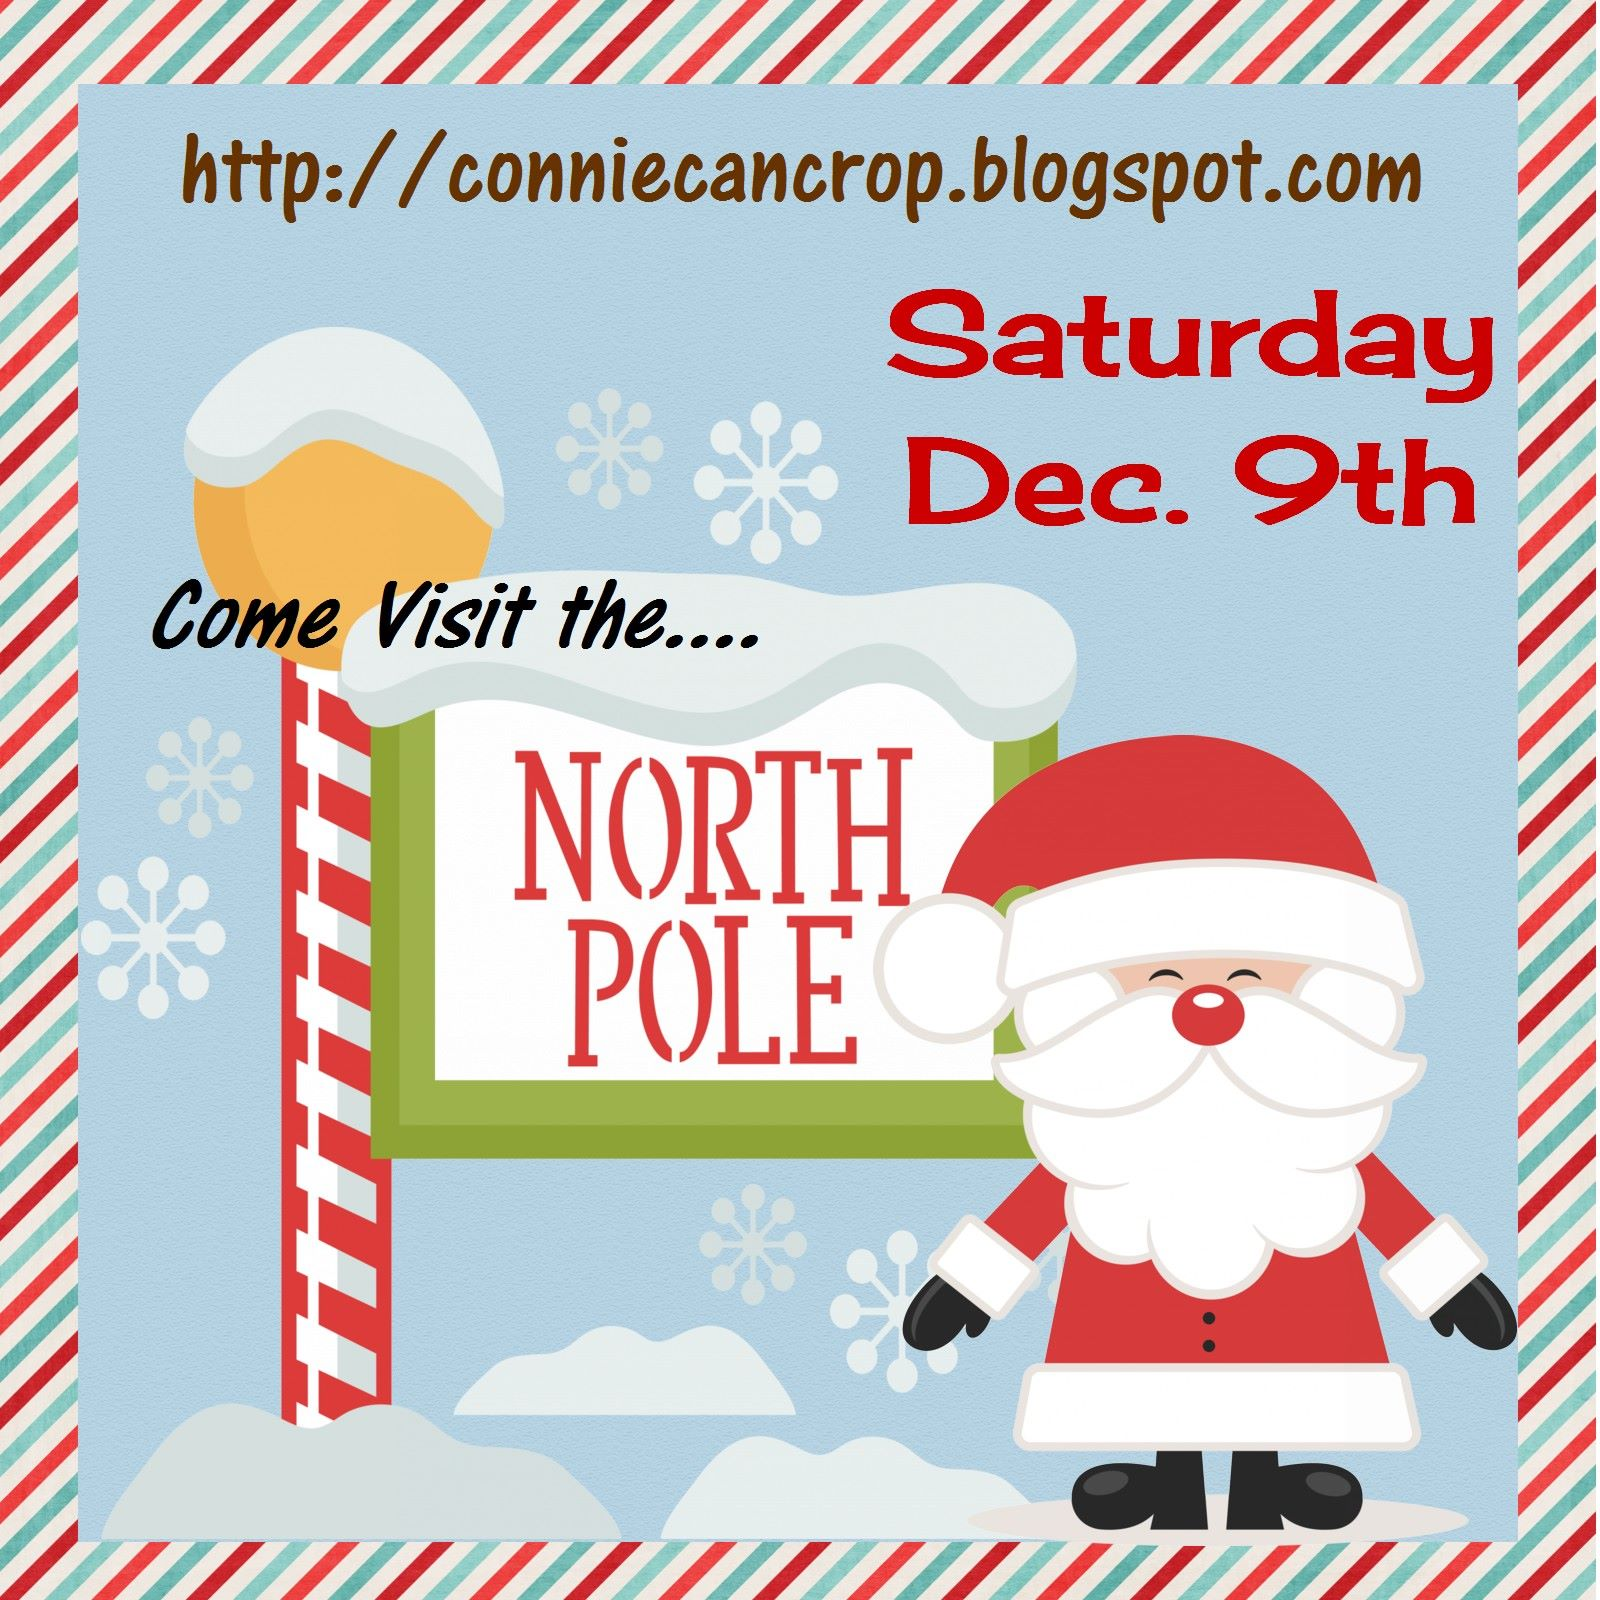 Come Visit the North Pole Blog Hop